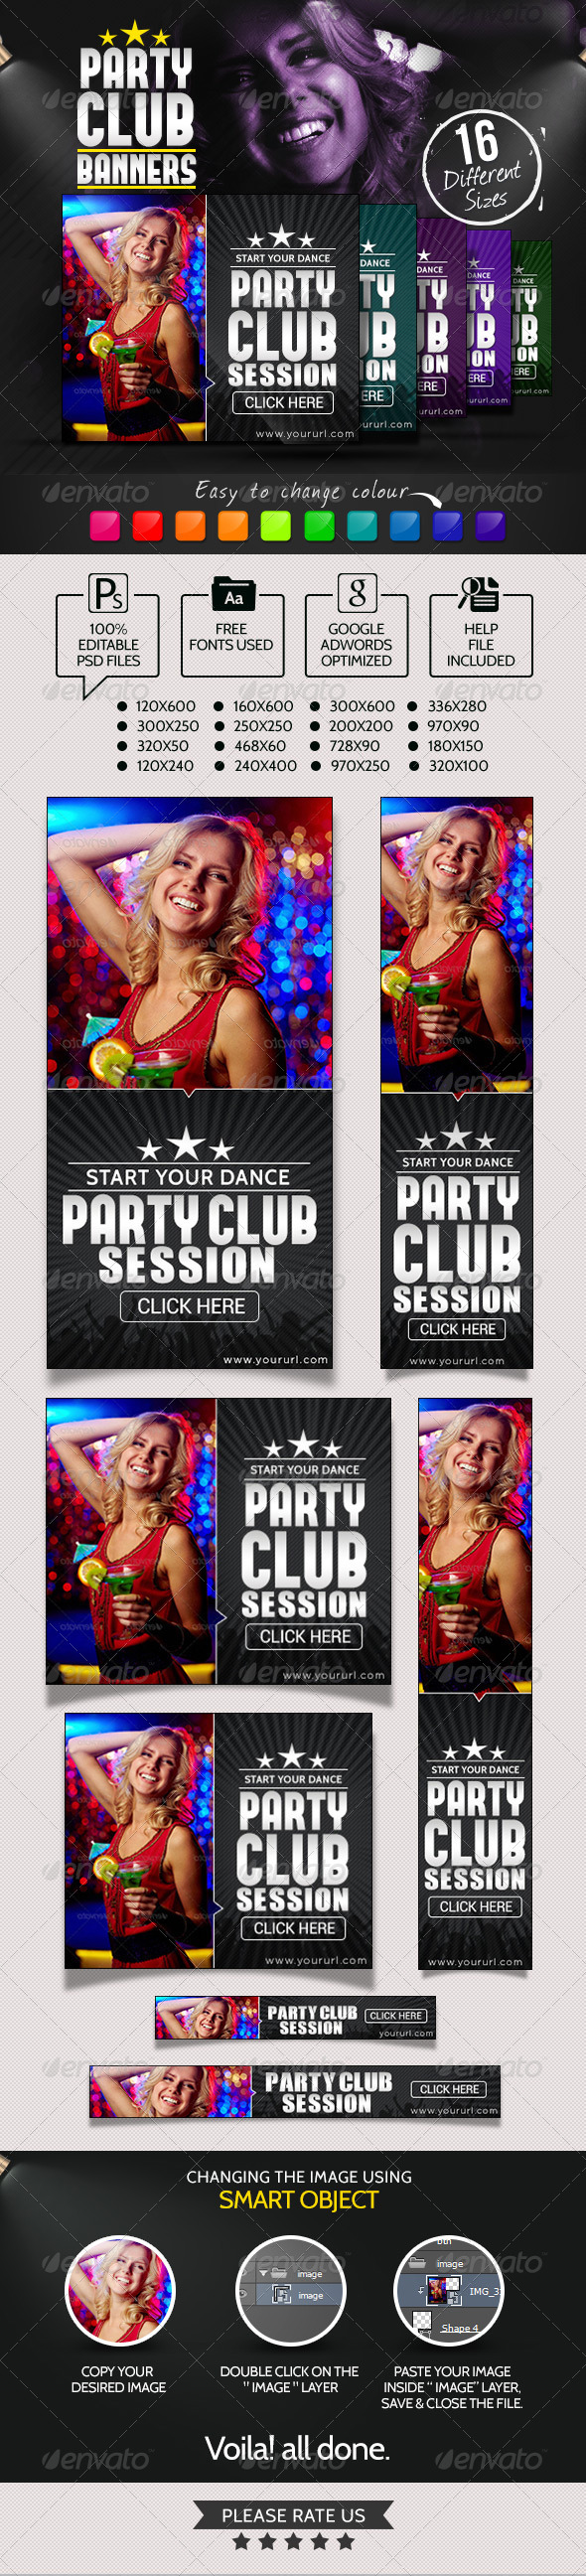 Club Party Night Banners - Banners & Ads Web Elements